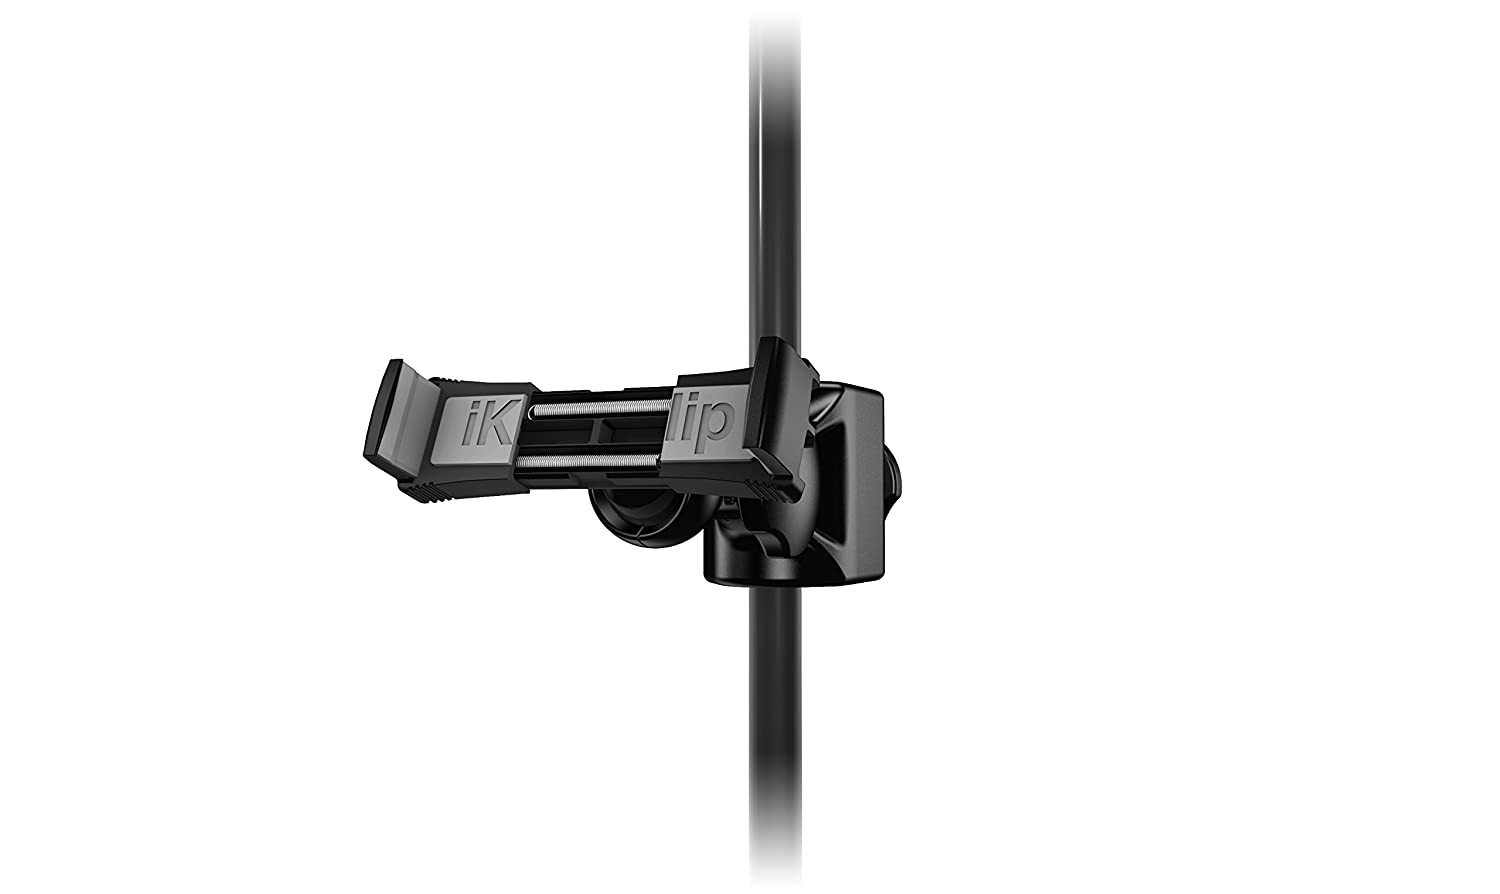 IK Multimedia iKlip Xpand Mini universal mic stand support for iPhone, iPod touch and smartphones